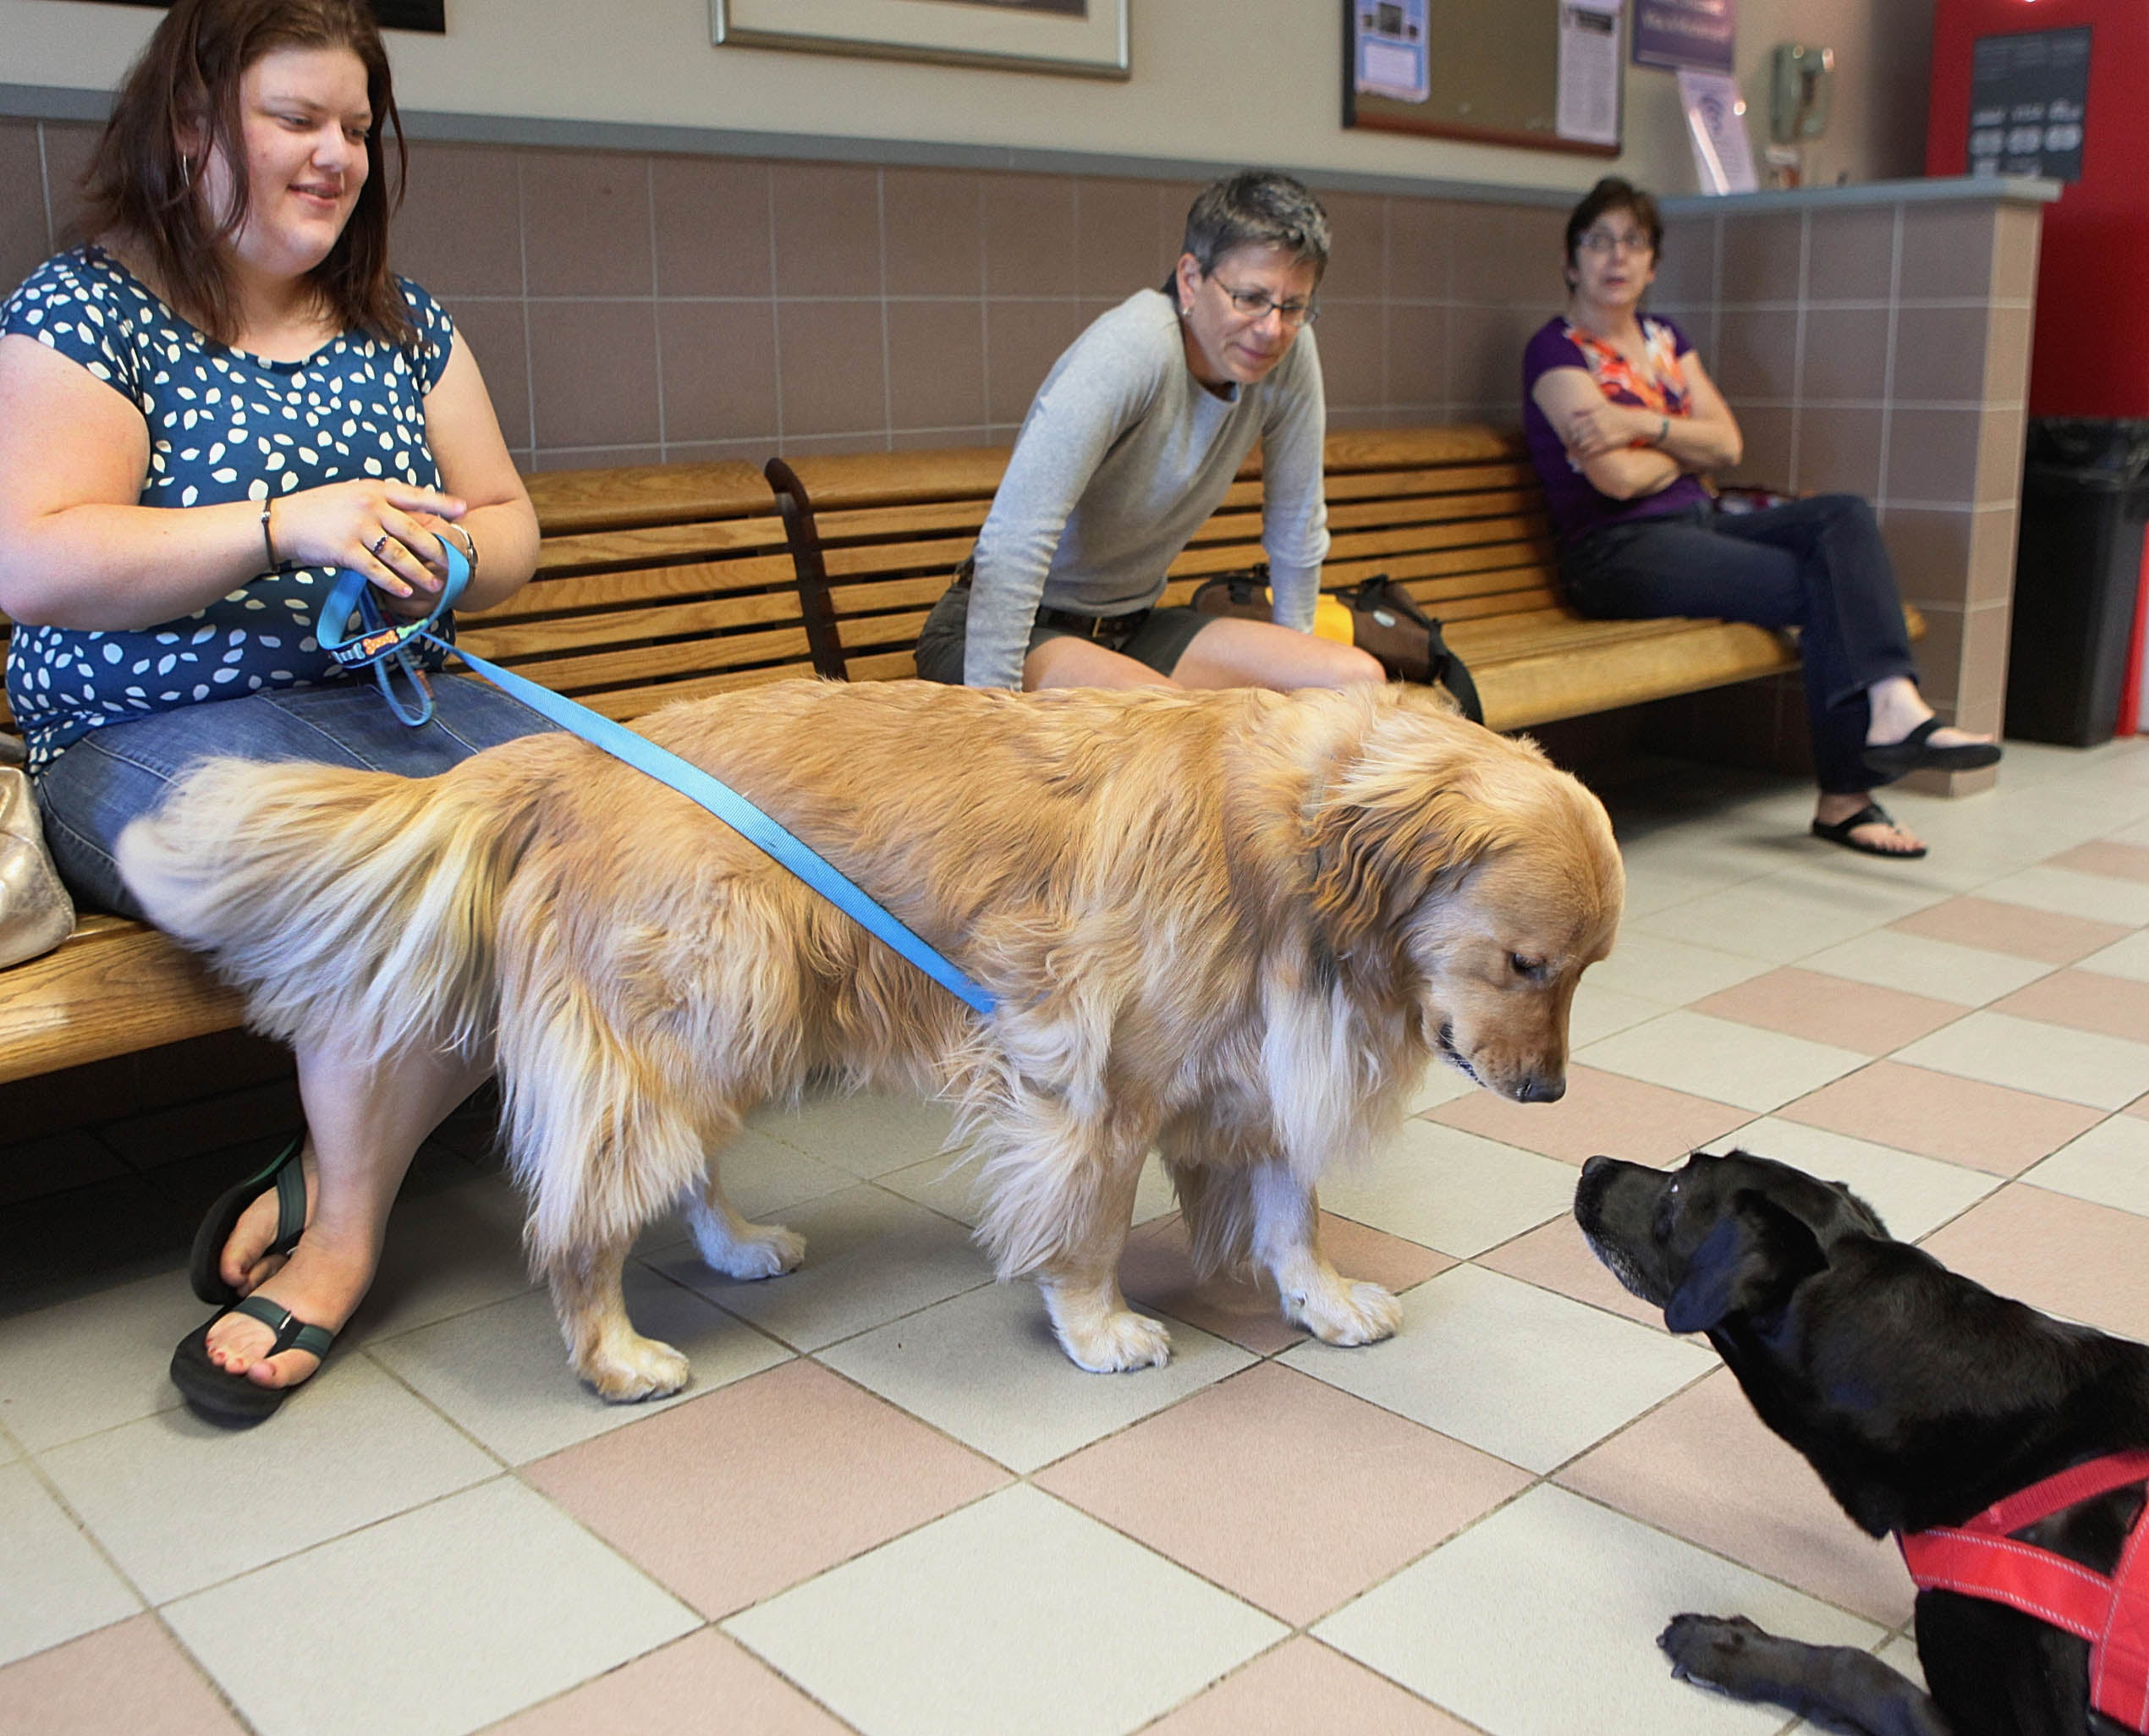 Lisa Baruzzi with golden retriever Richie at the Tufts obesity clinic for animals in North Grafton.